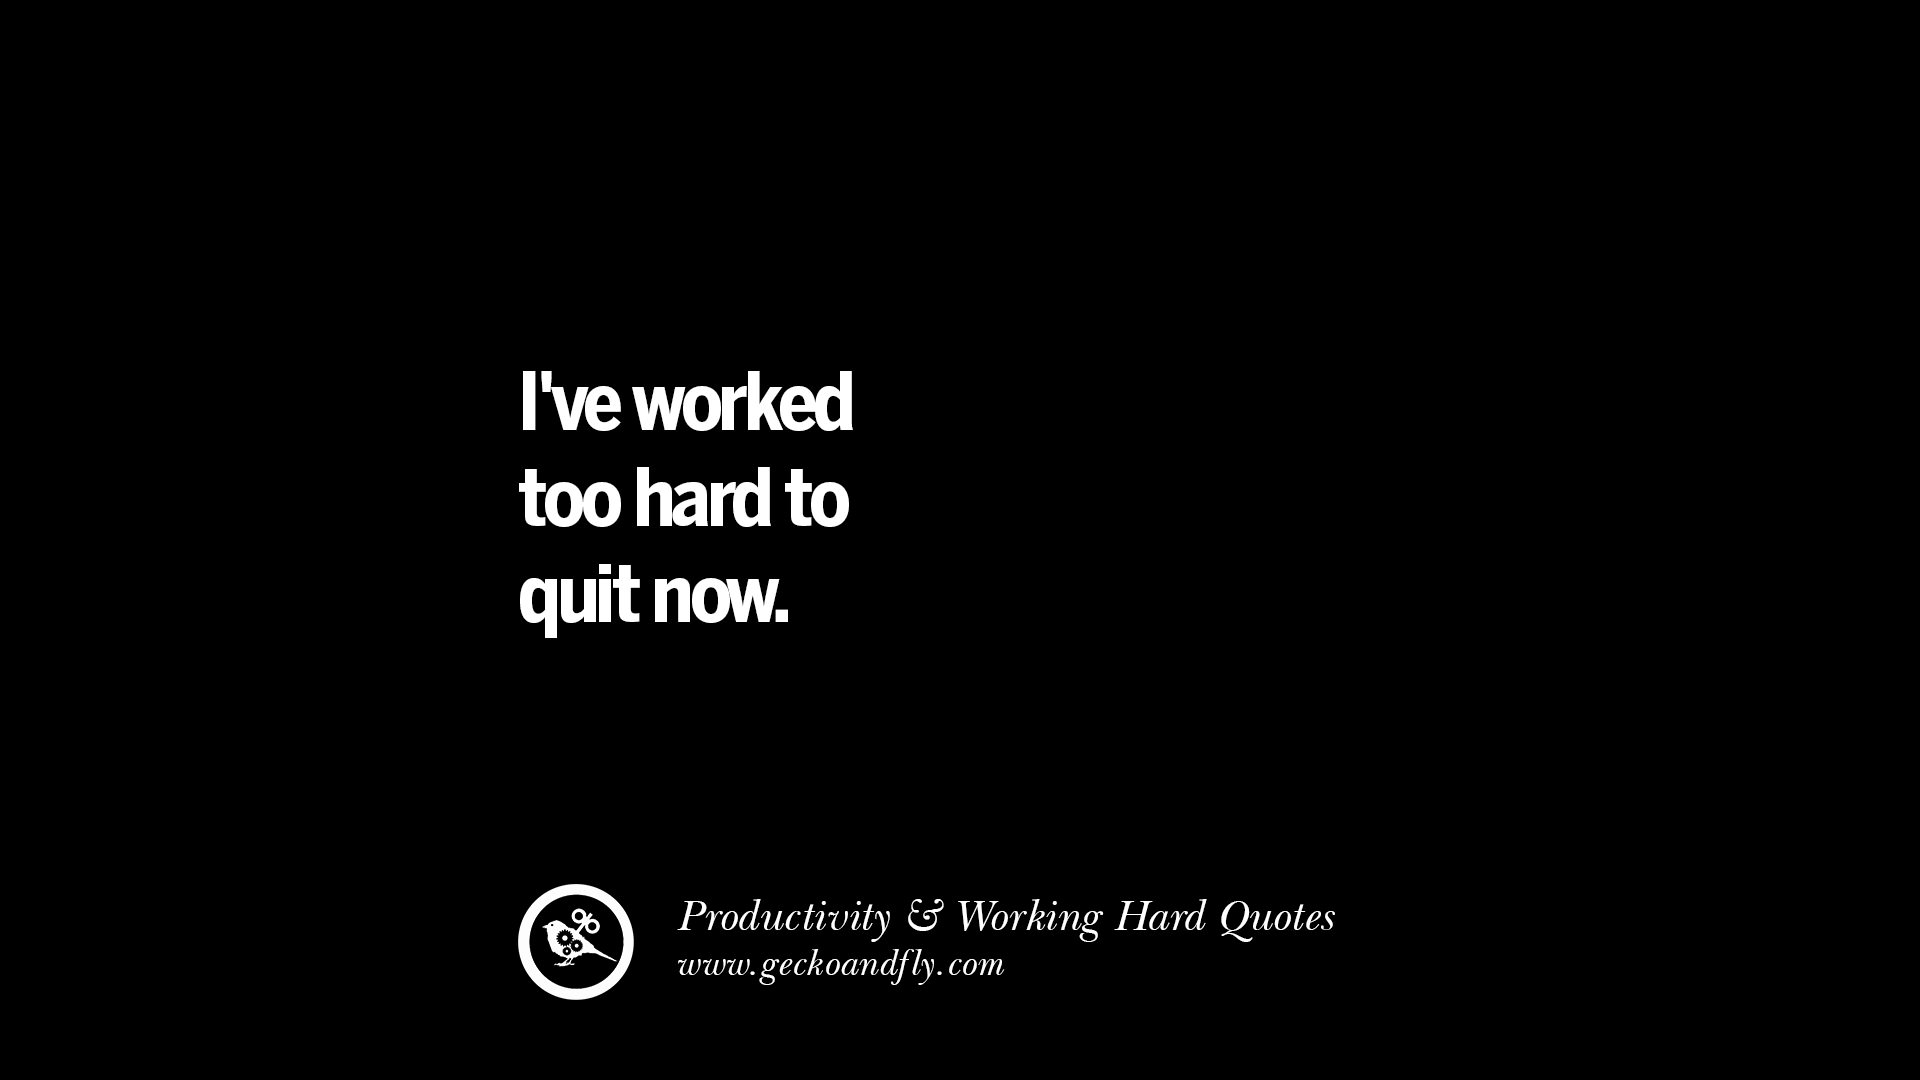 Work Hard Quotes 30 Uplifting Quotes On Increasing Productivity And Working Hard